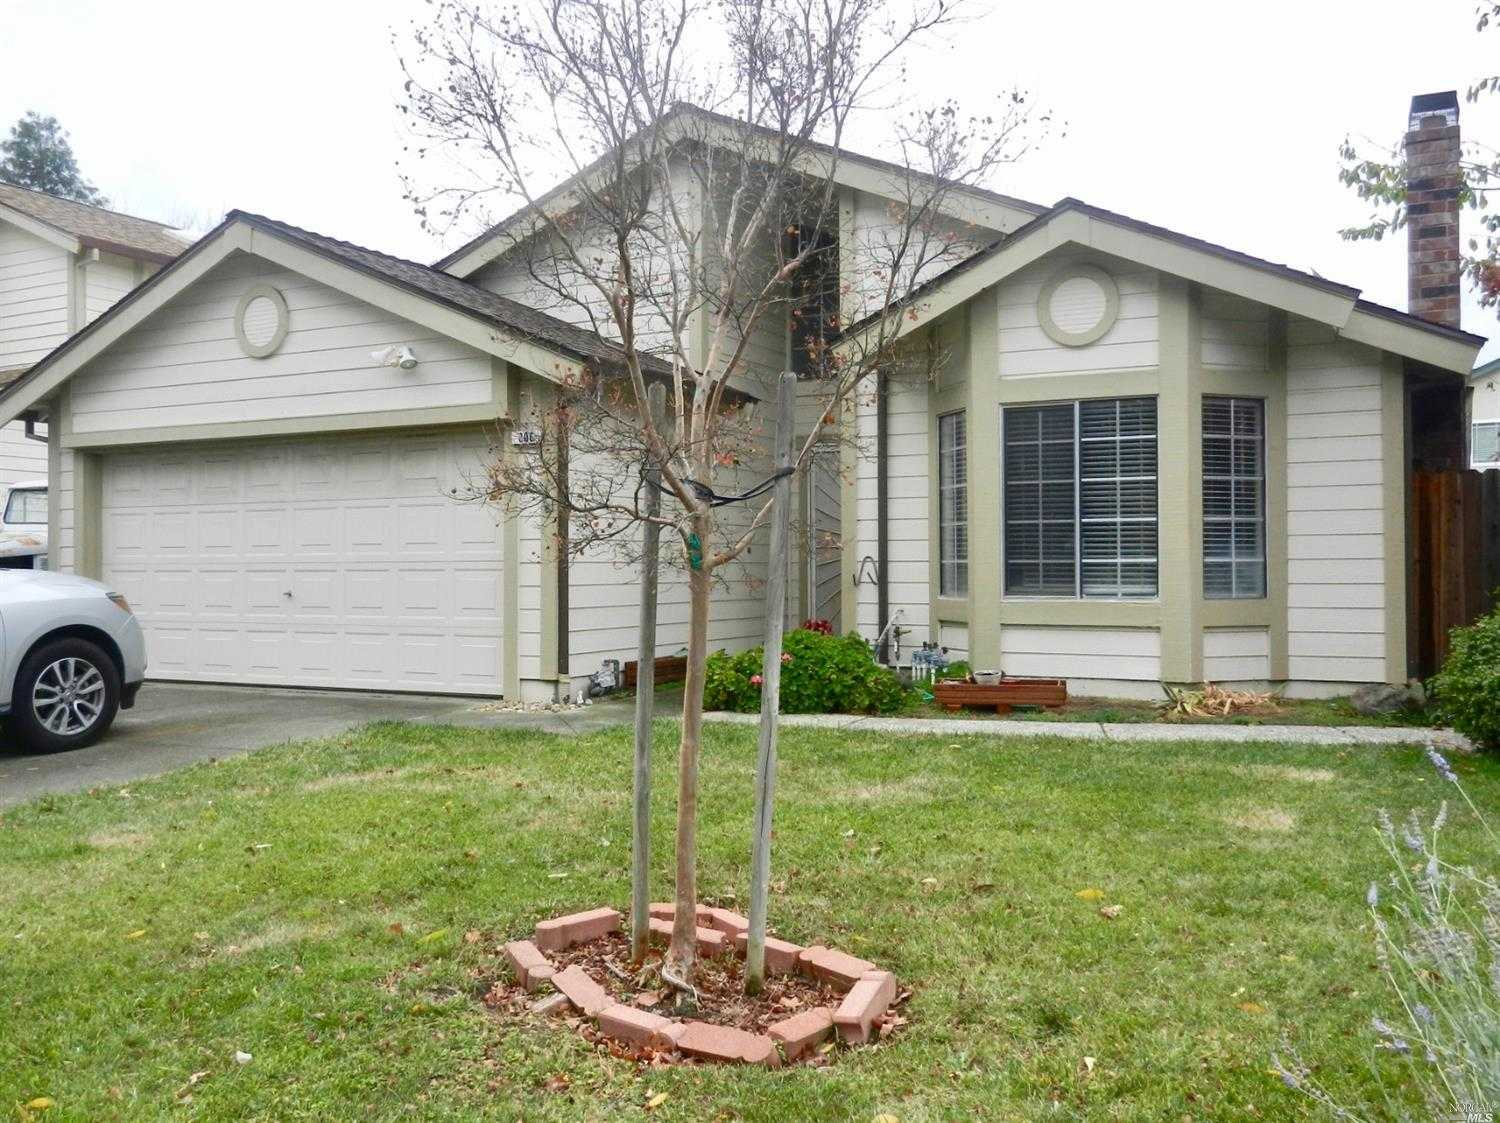 $444,900 - 4Br/2Ba -  for Sale in Vacaville